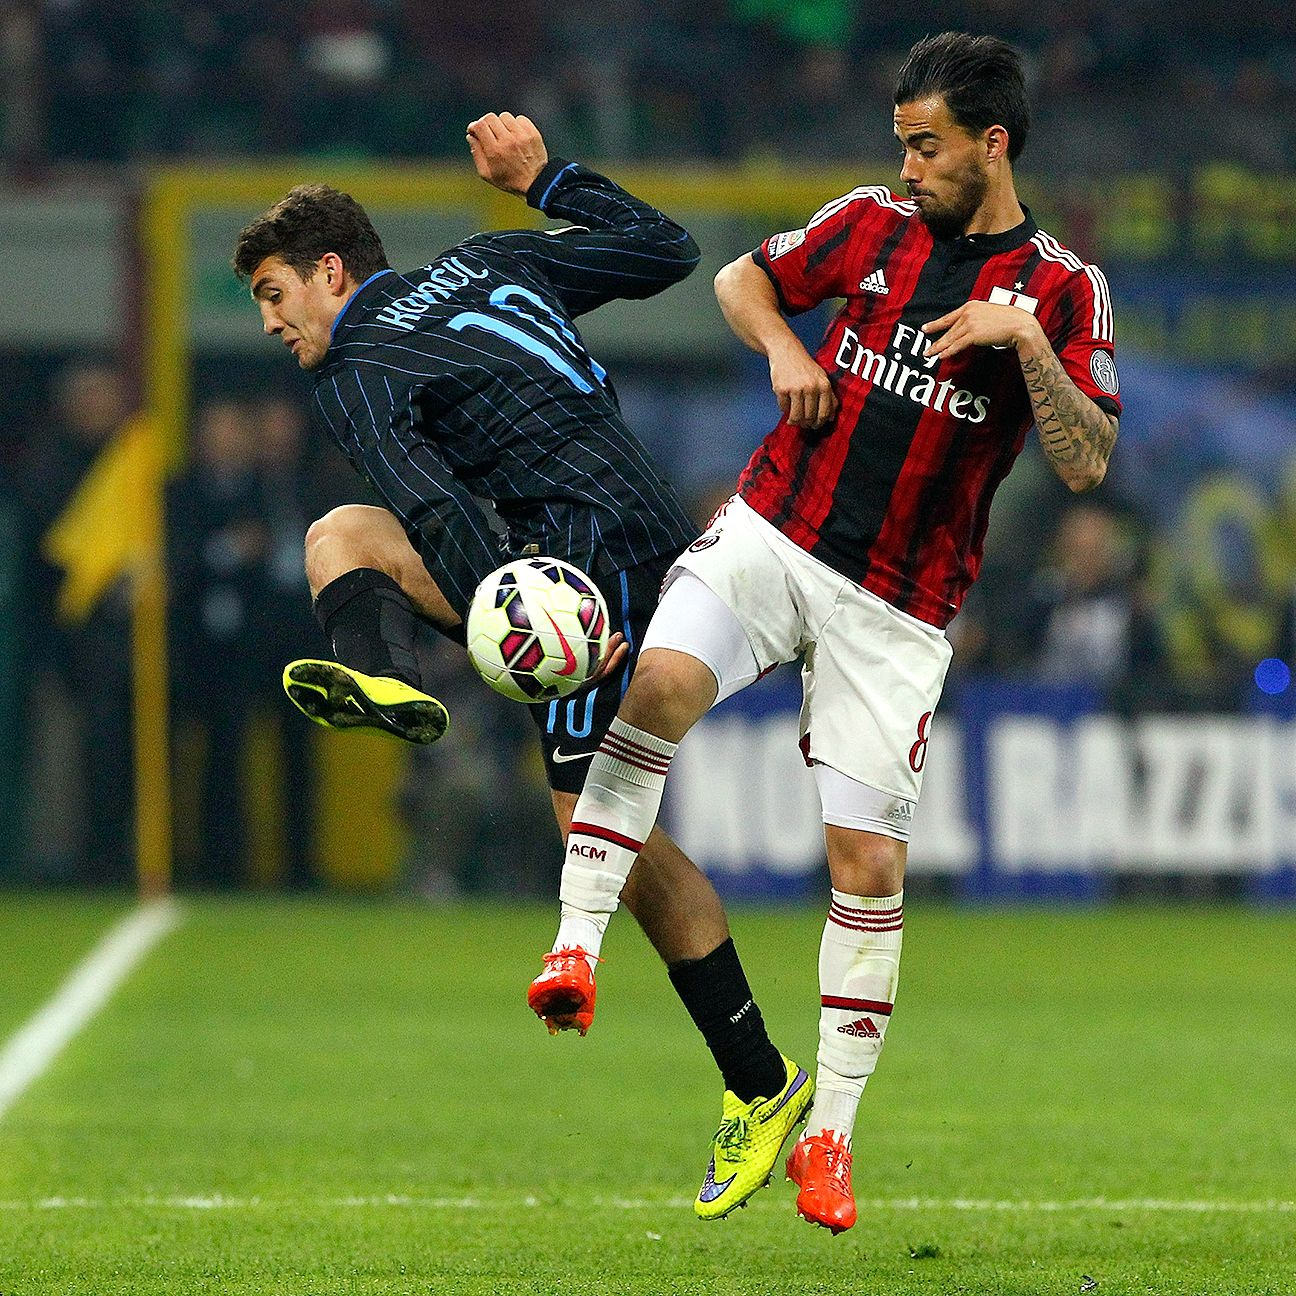 Suso and Milan were unable to muster much of a threat on Sunday in their 0-0 draw with Inter.